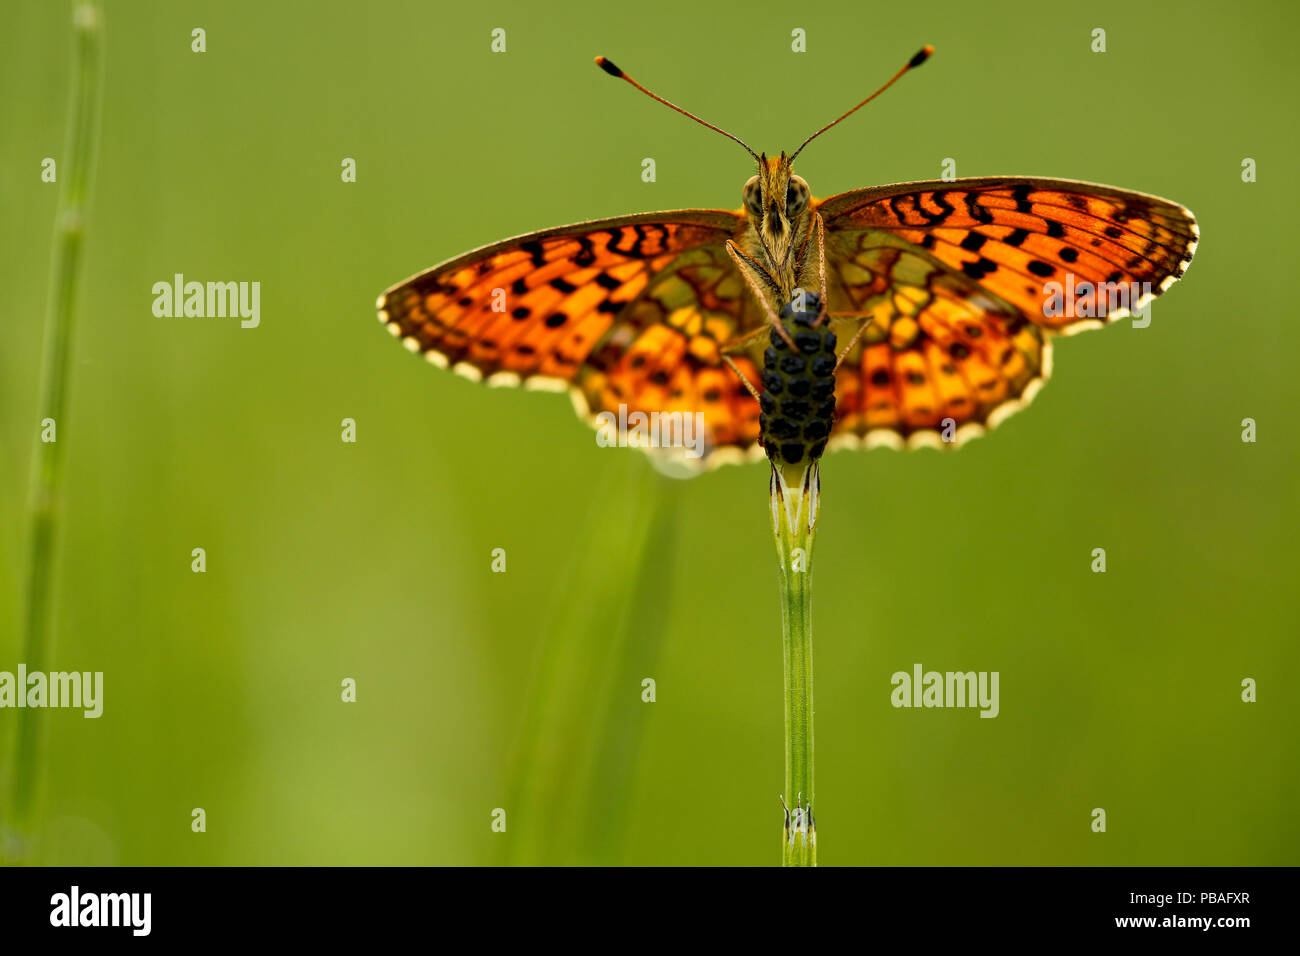 Lesser marbled fritillary butterfly (Brenthis ino), Haute-Savoie, France, June. - Stock Image